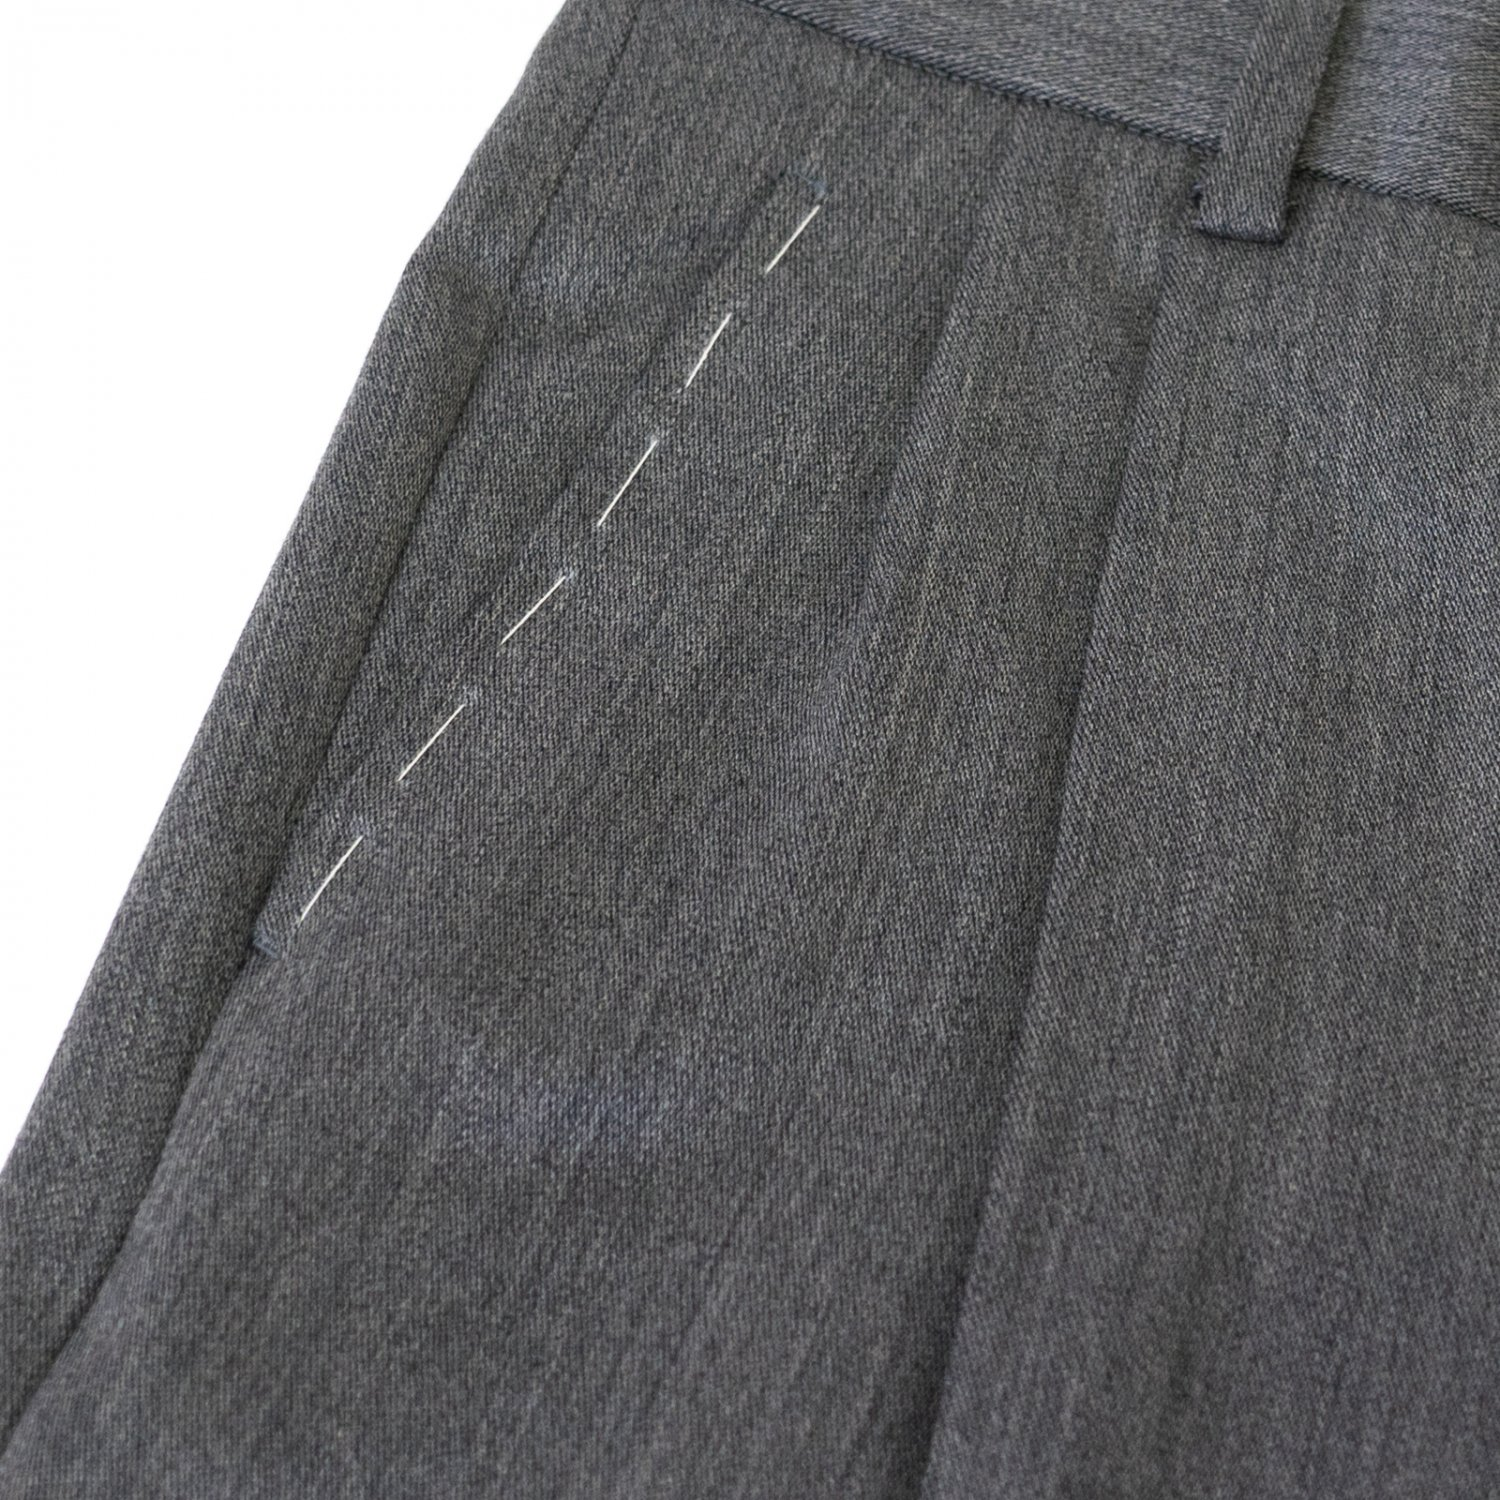 RICHFIELD * Wool 2tuck Tapered Trousers * Gray